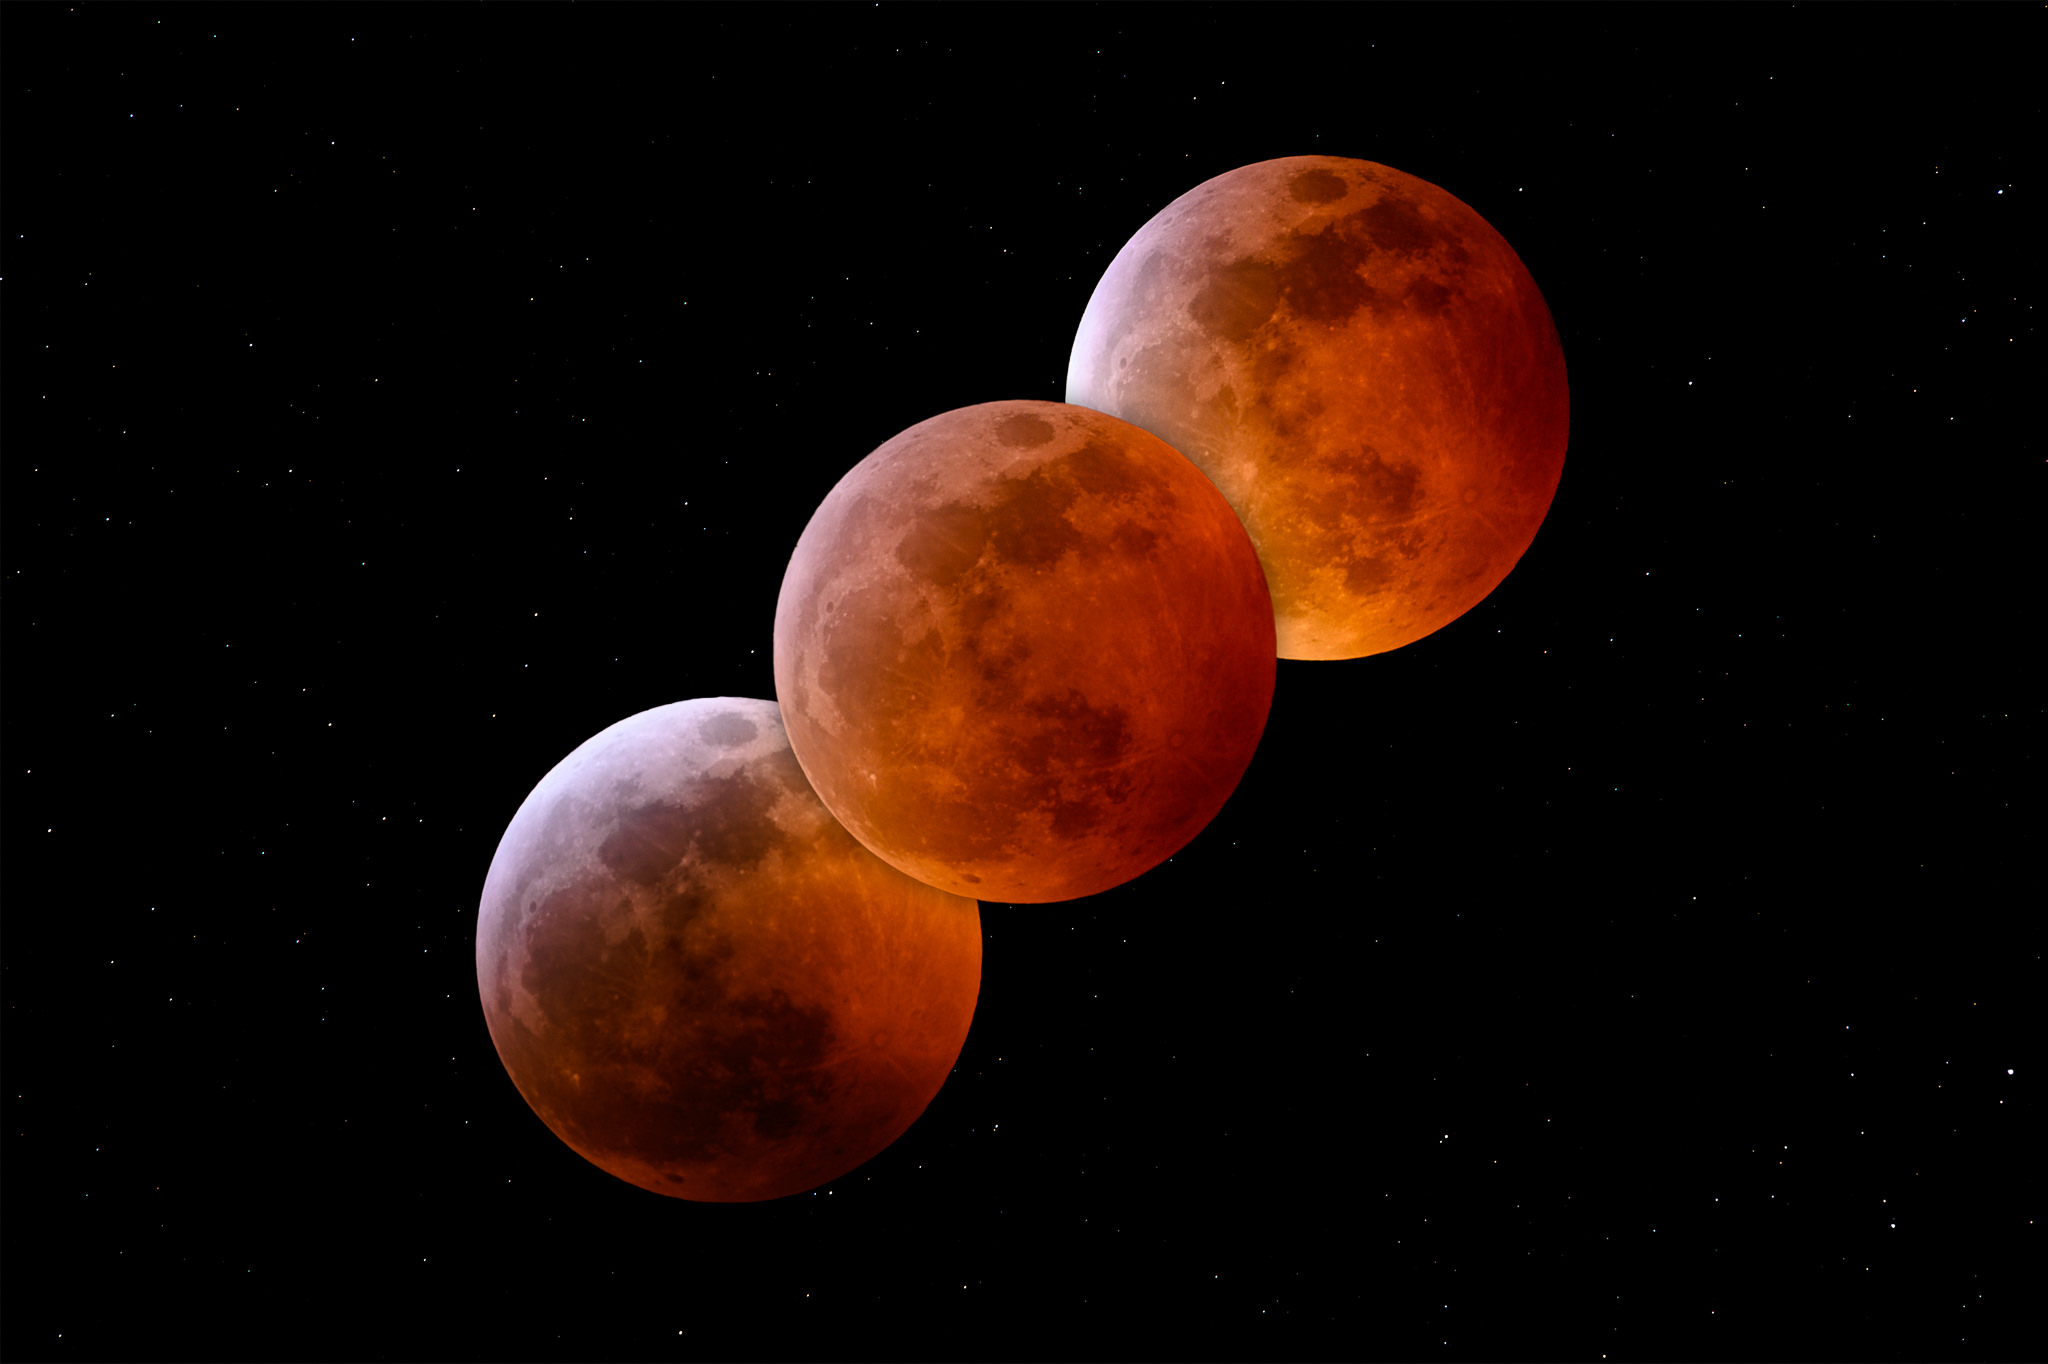 4th Lunar Eclipse is about fall